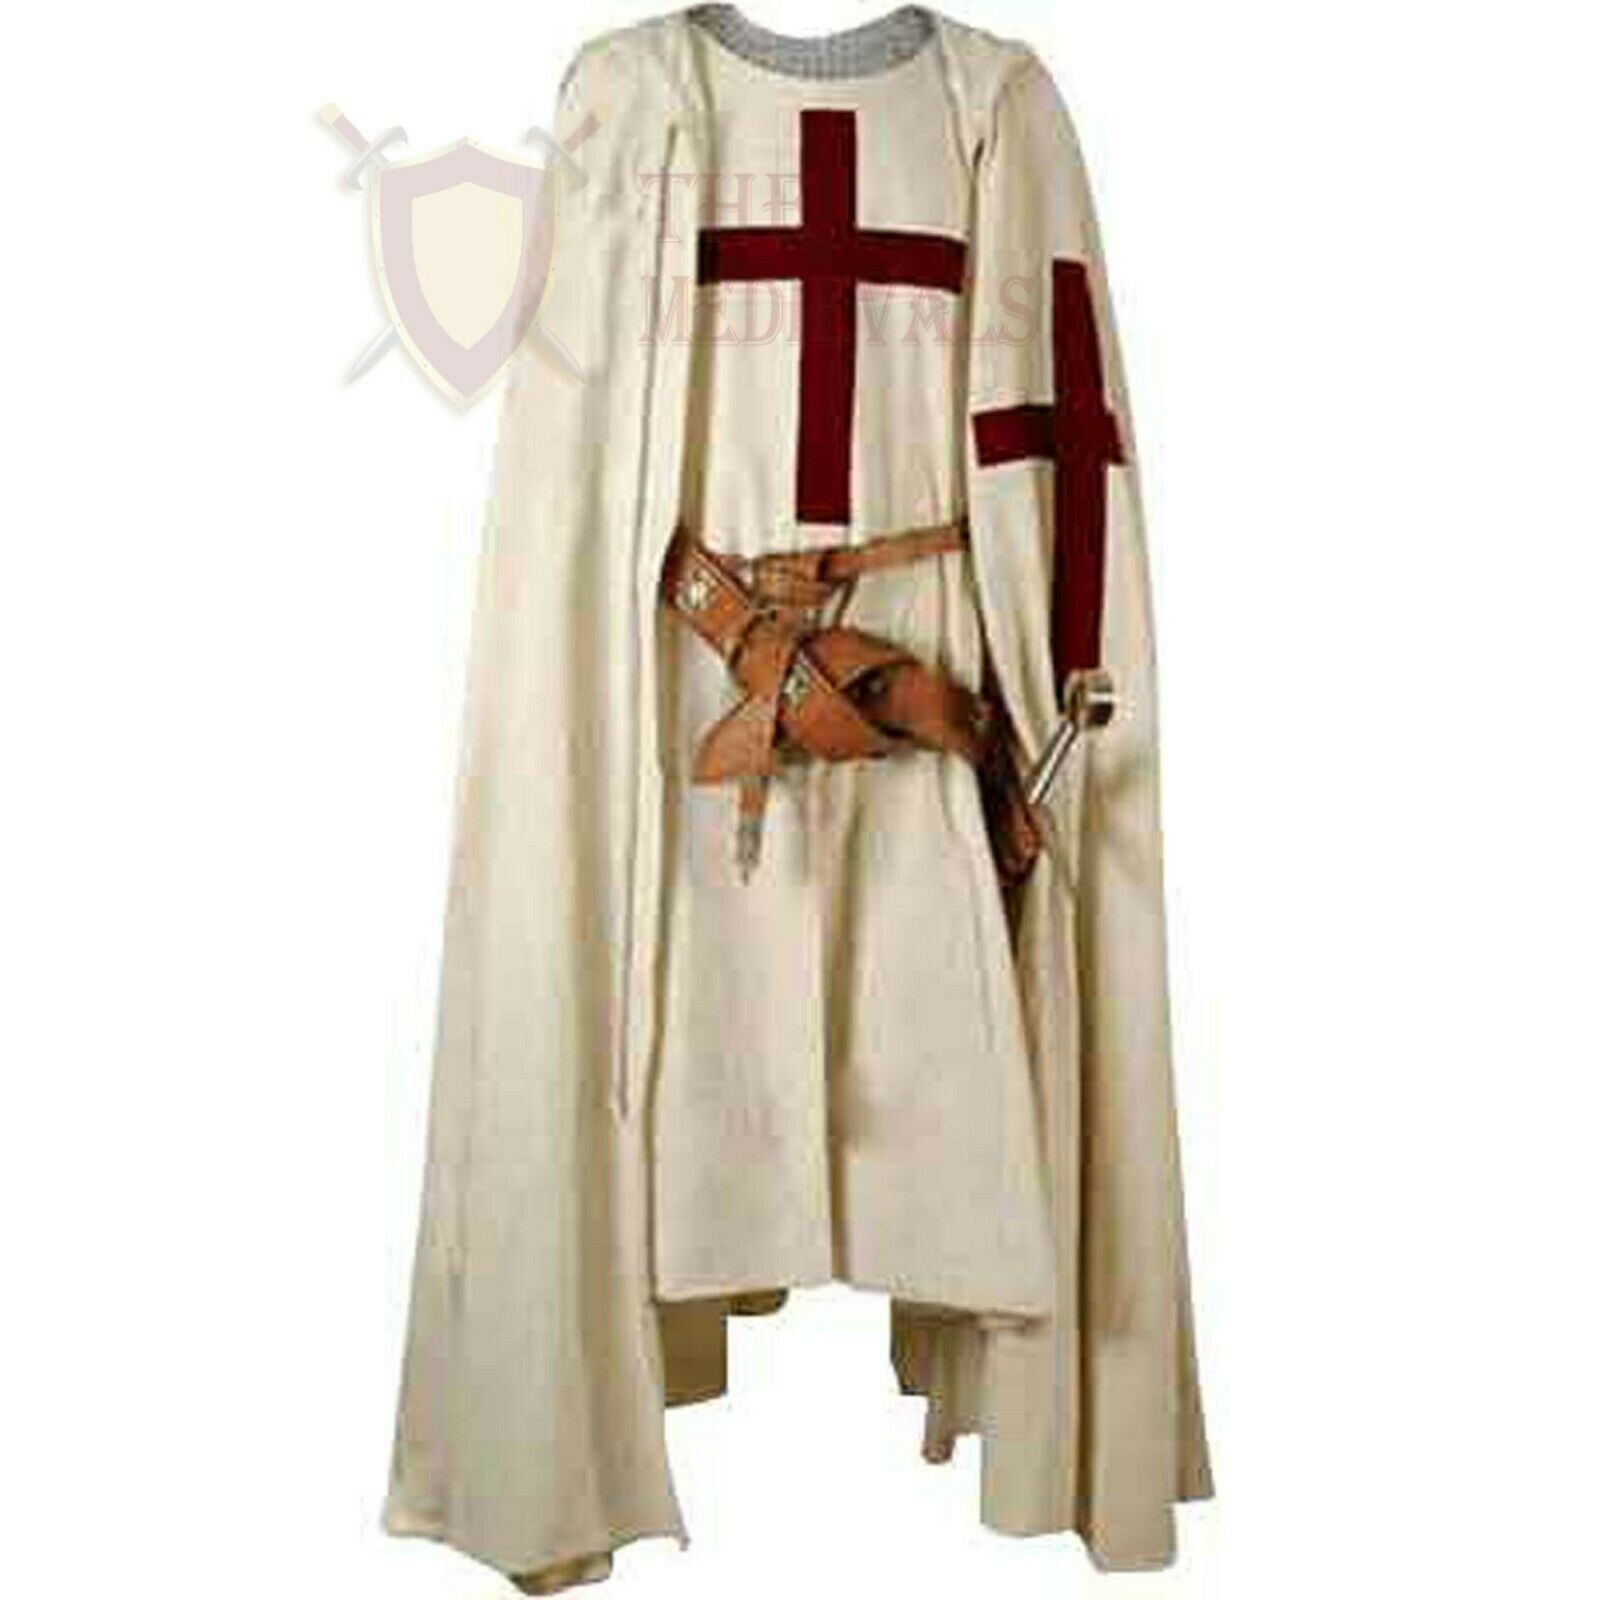 THE MEDIEVALS Crusaders Cape Cotton Tunic SCA Armor plane costume Dress Active